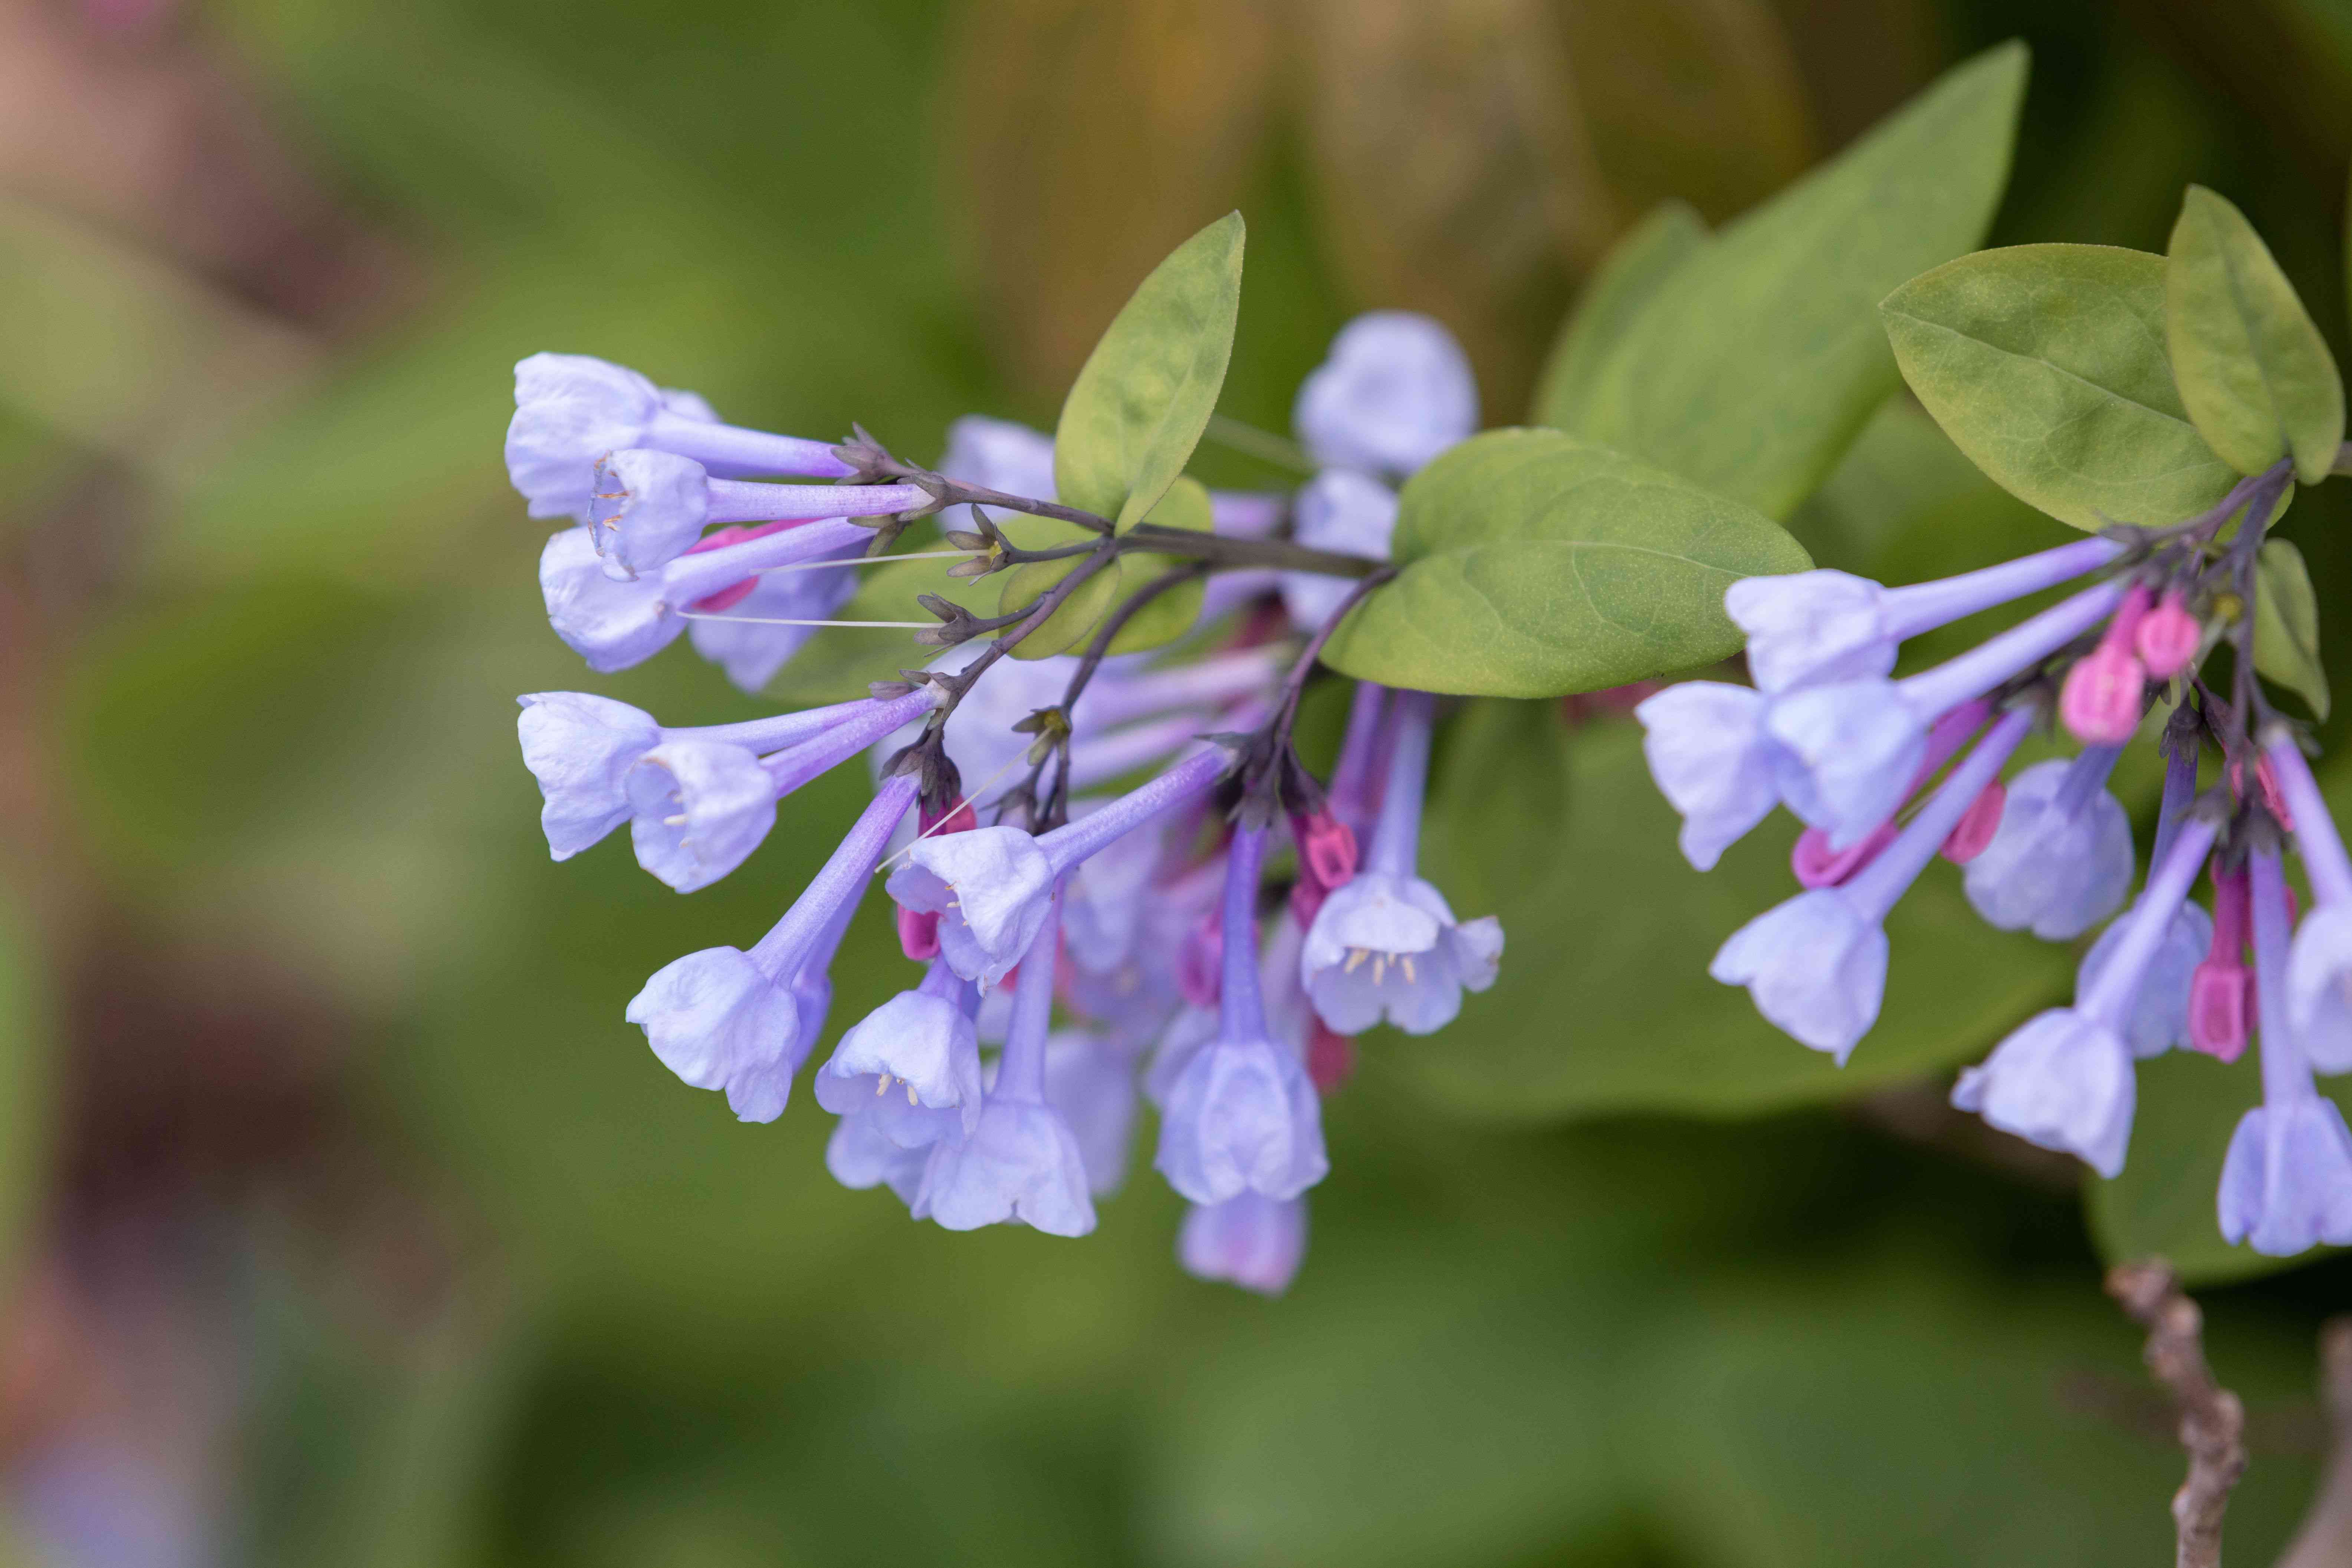 Virginia bluebells plant with small purple trumpet-shaped flowers on edge of stems closeup